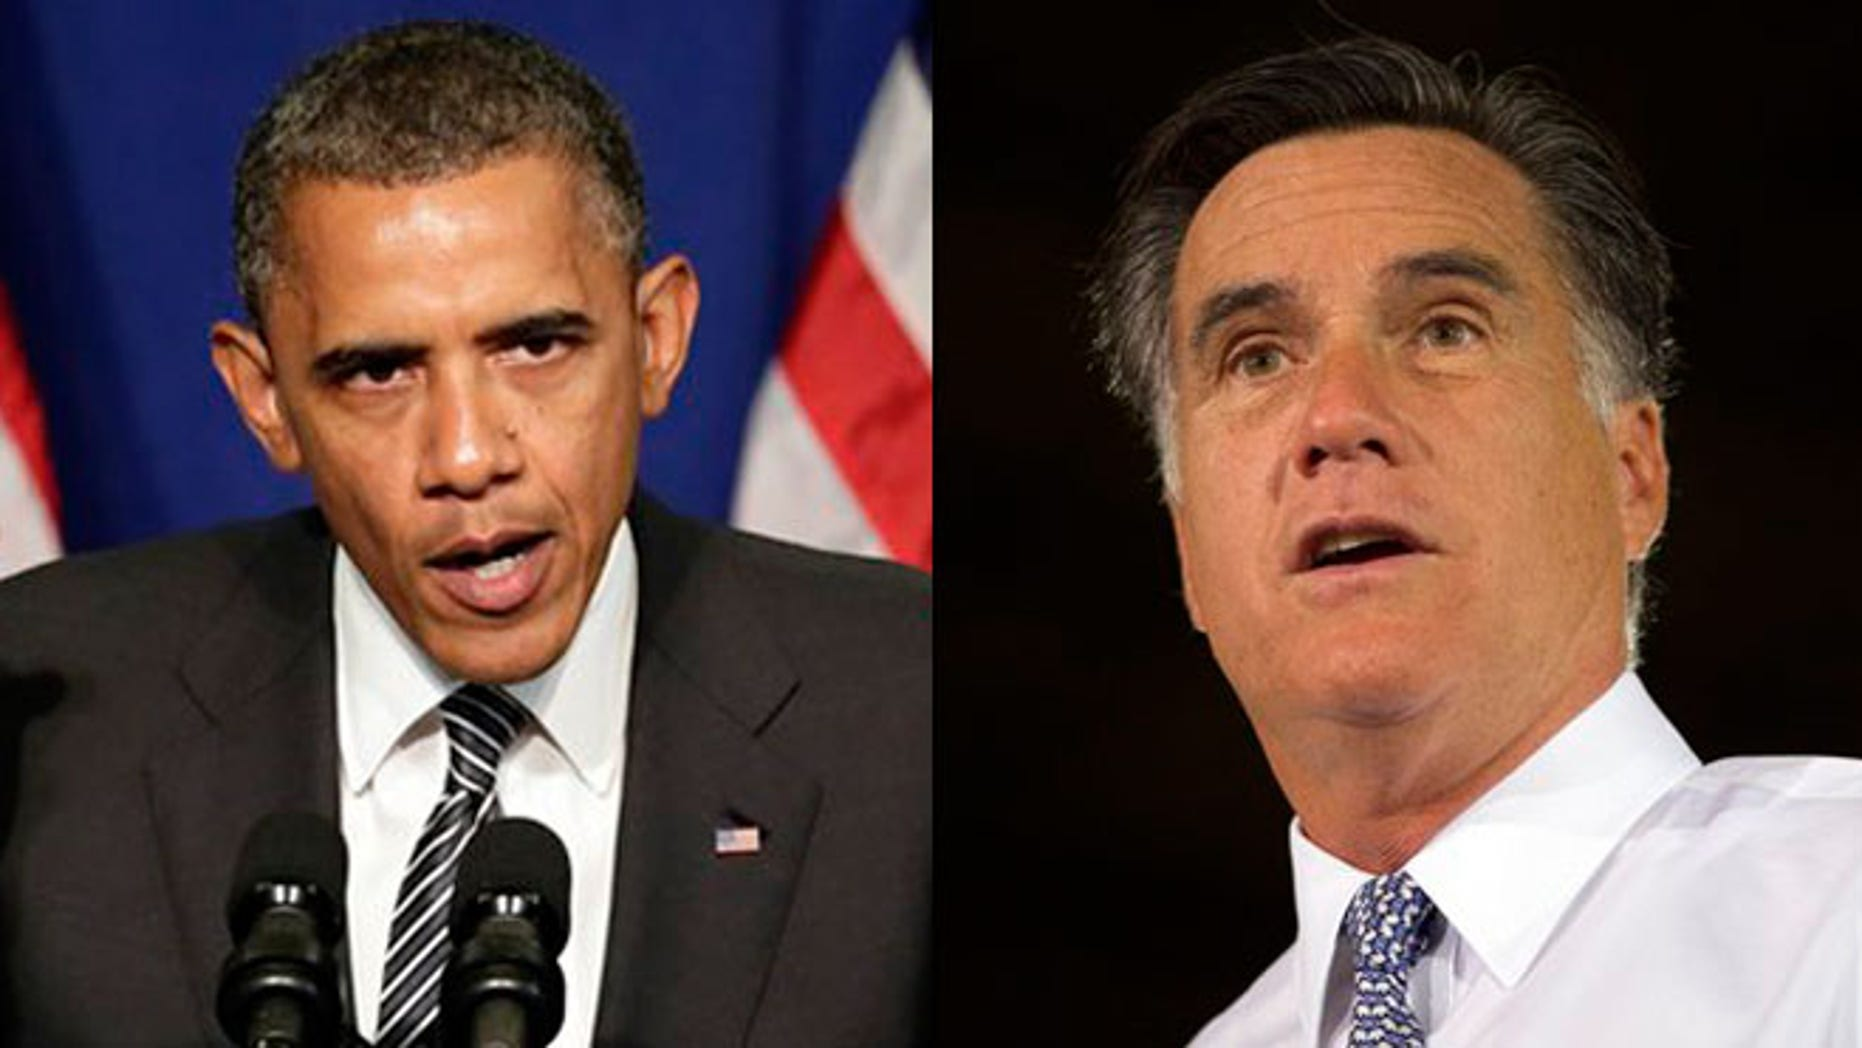 President Obama and Mitt Romney are shown here at campaign events on June 12, 2012.